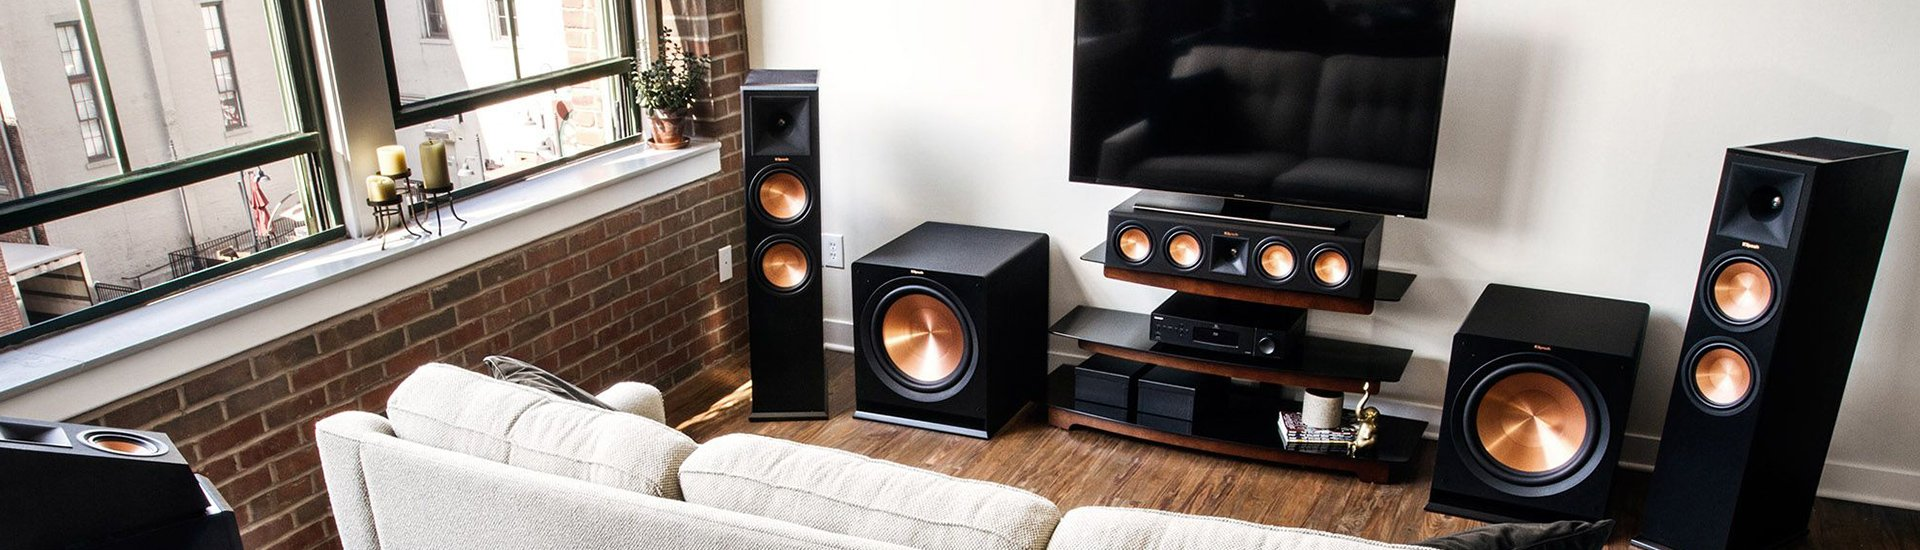 How to Choose a Home Theater System: Buying Guide | World Wide Stereo